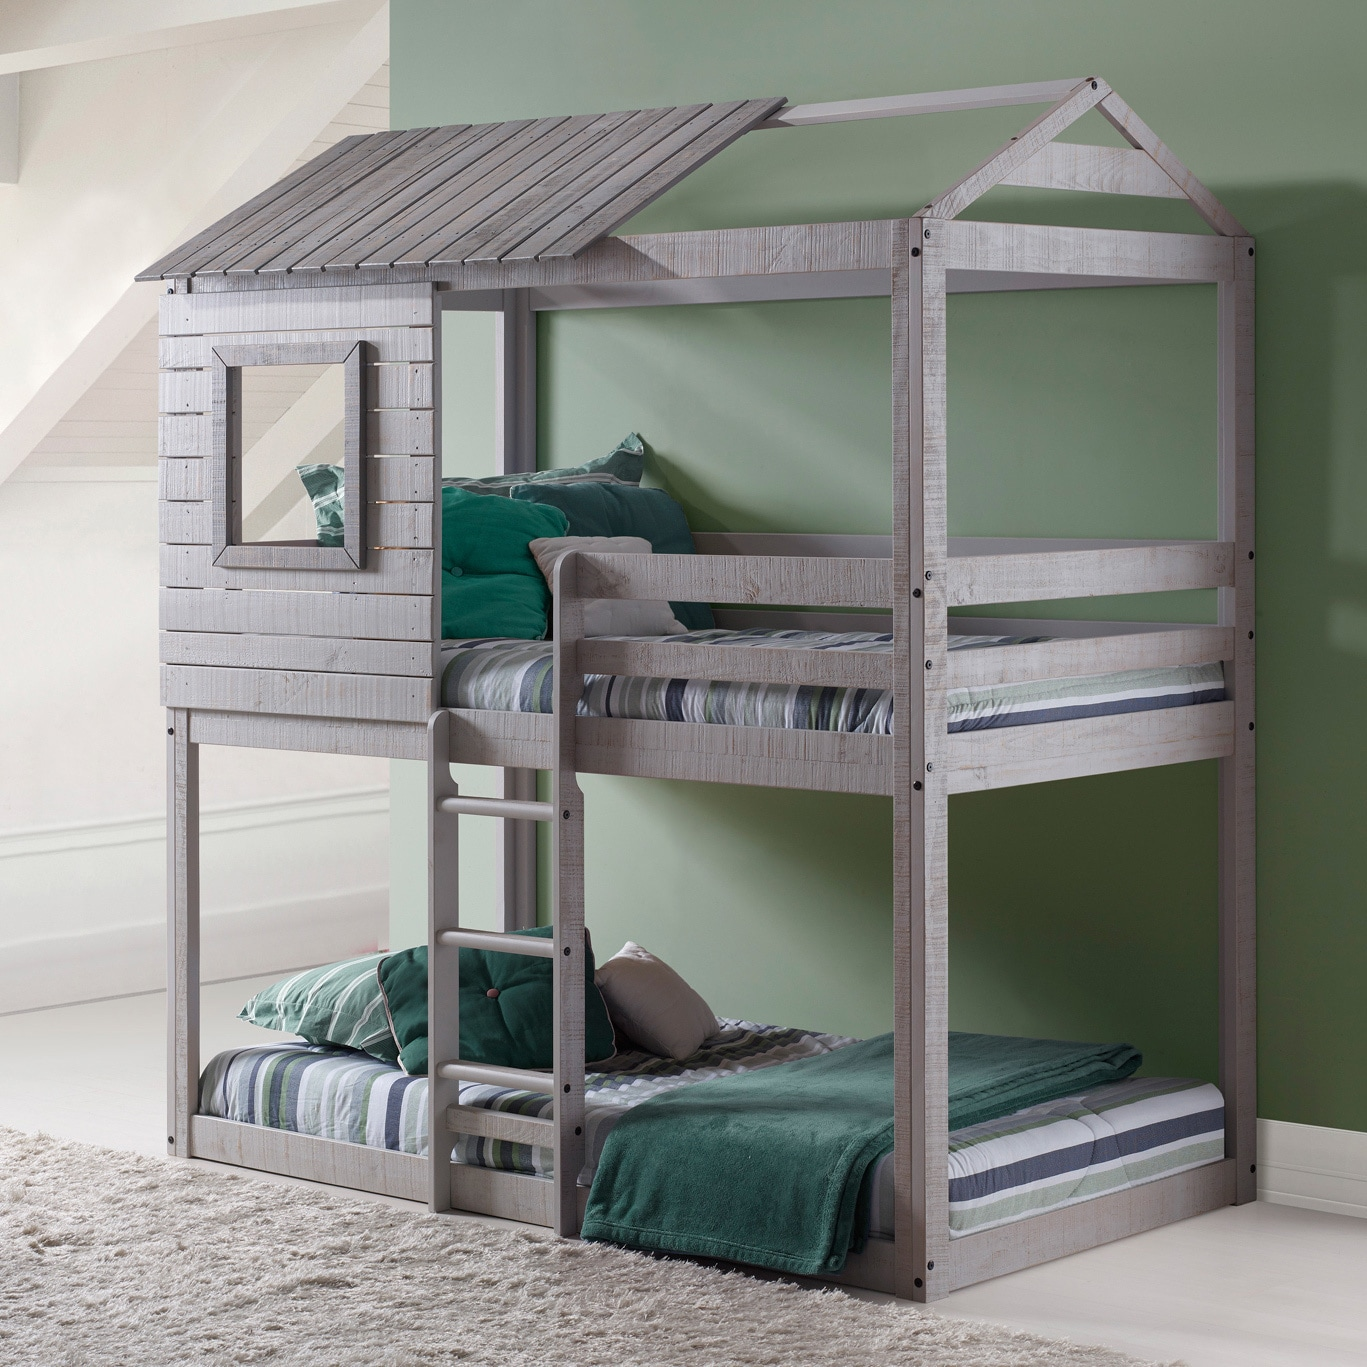 cool bunk beds for adults front large window shop donco kids loftstyle light grey twin over bunk bed on sale free shipping today overstockcom 13751471